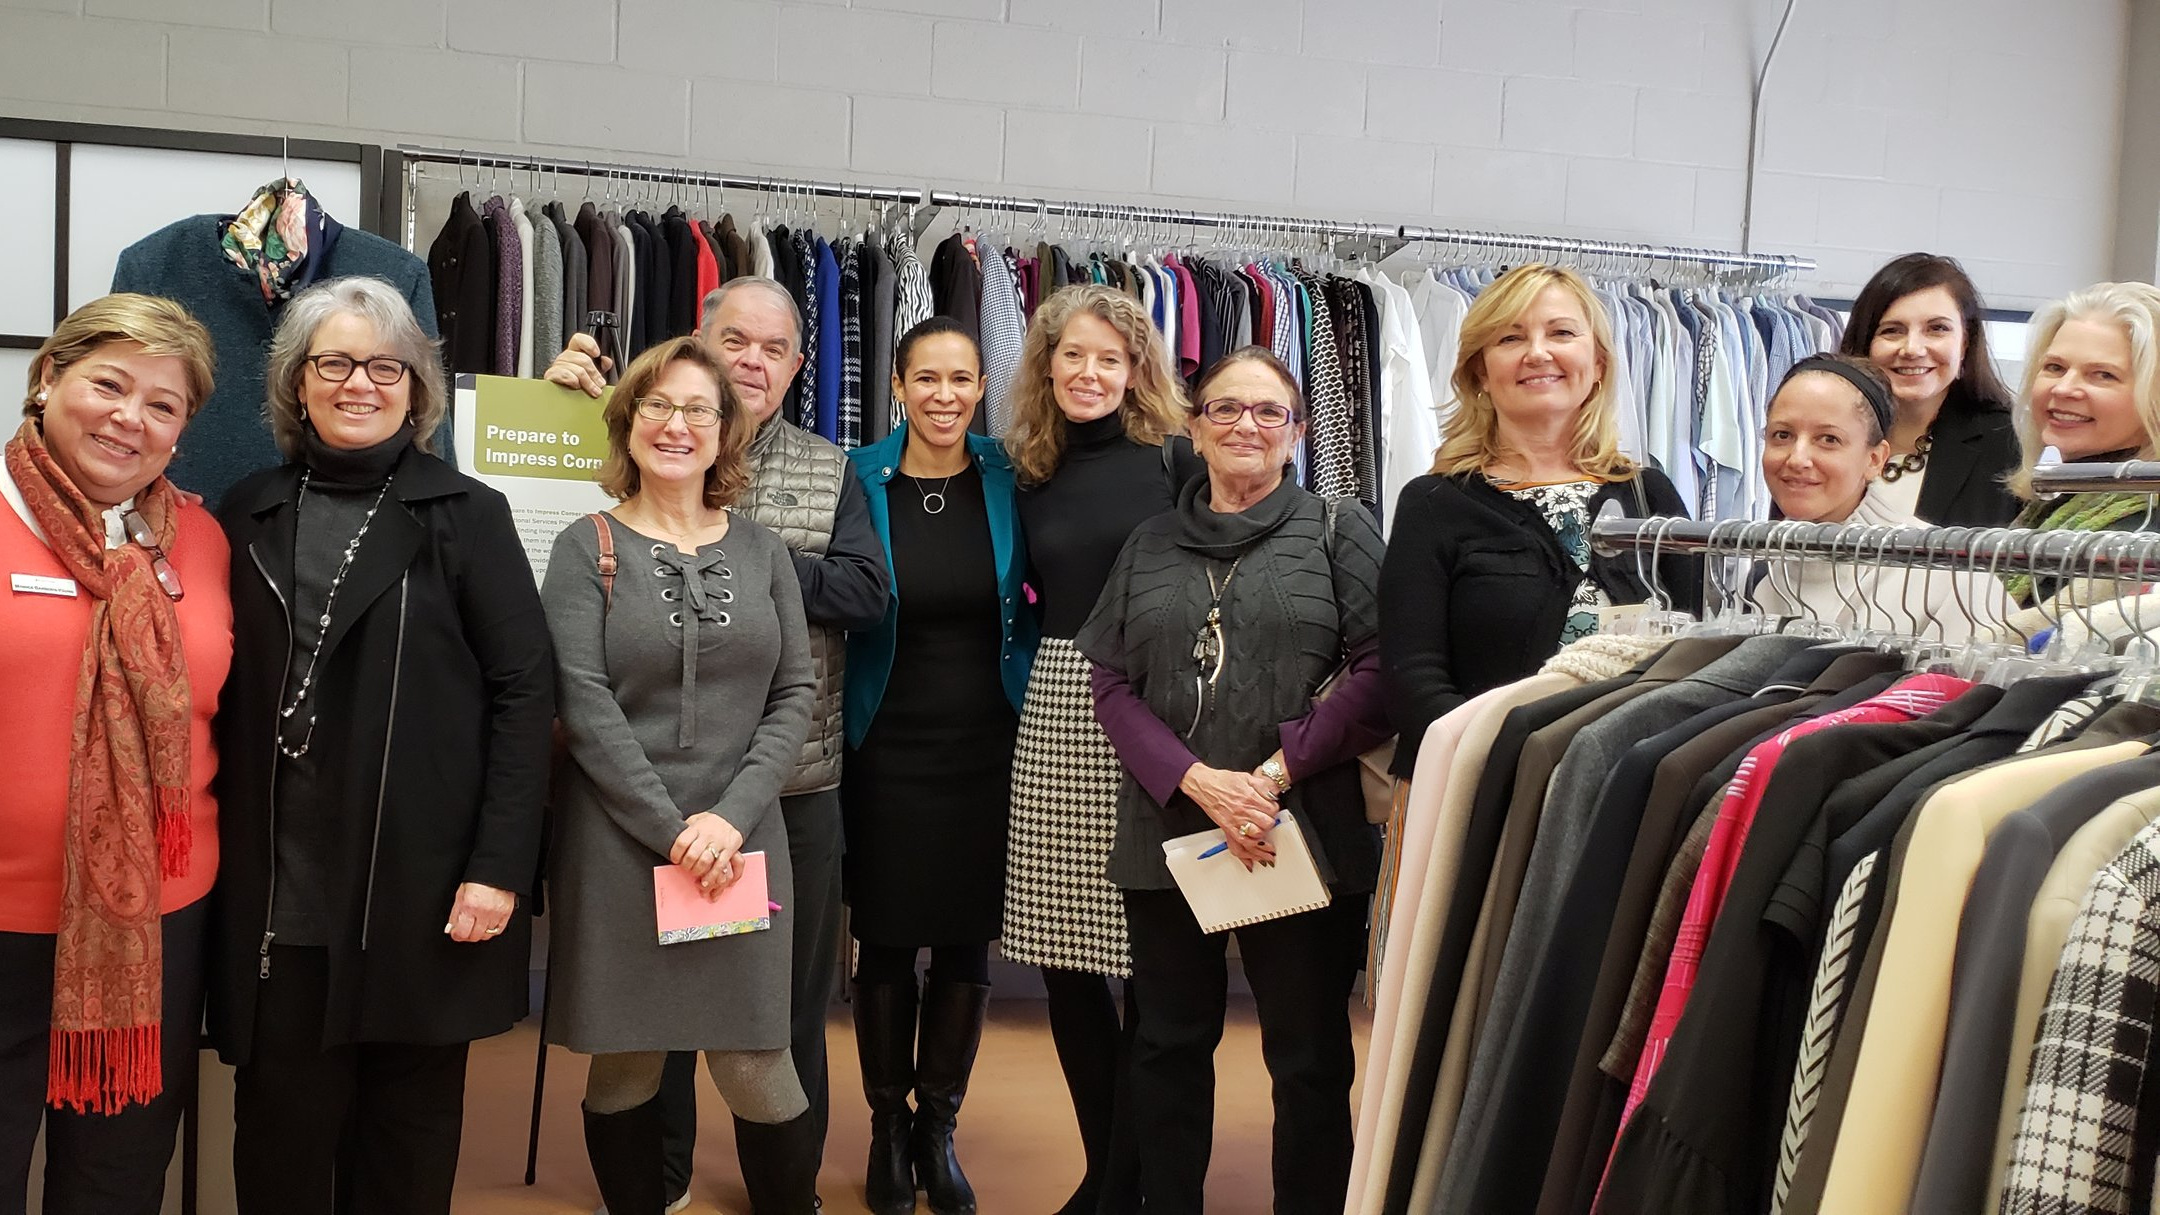 Members of our Sharing Montgomery Committee visited the nonprofit Interfaith Works, which provides free clothing and household goods to 13,000 income-qualified residents each year, as well as classes and other resources.